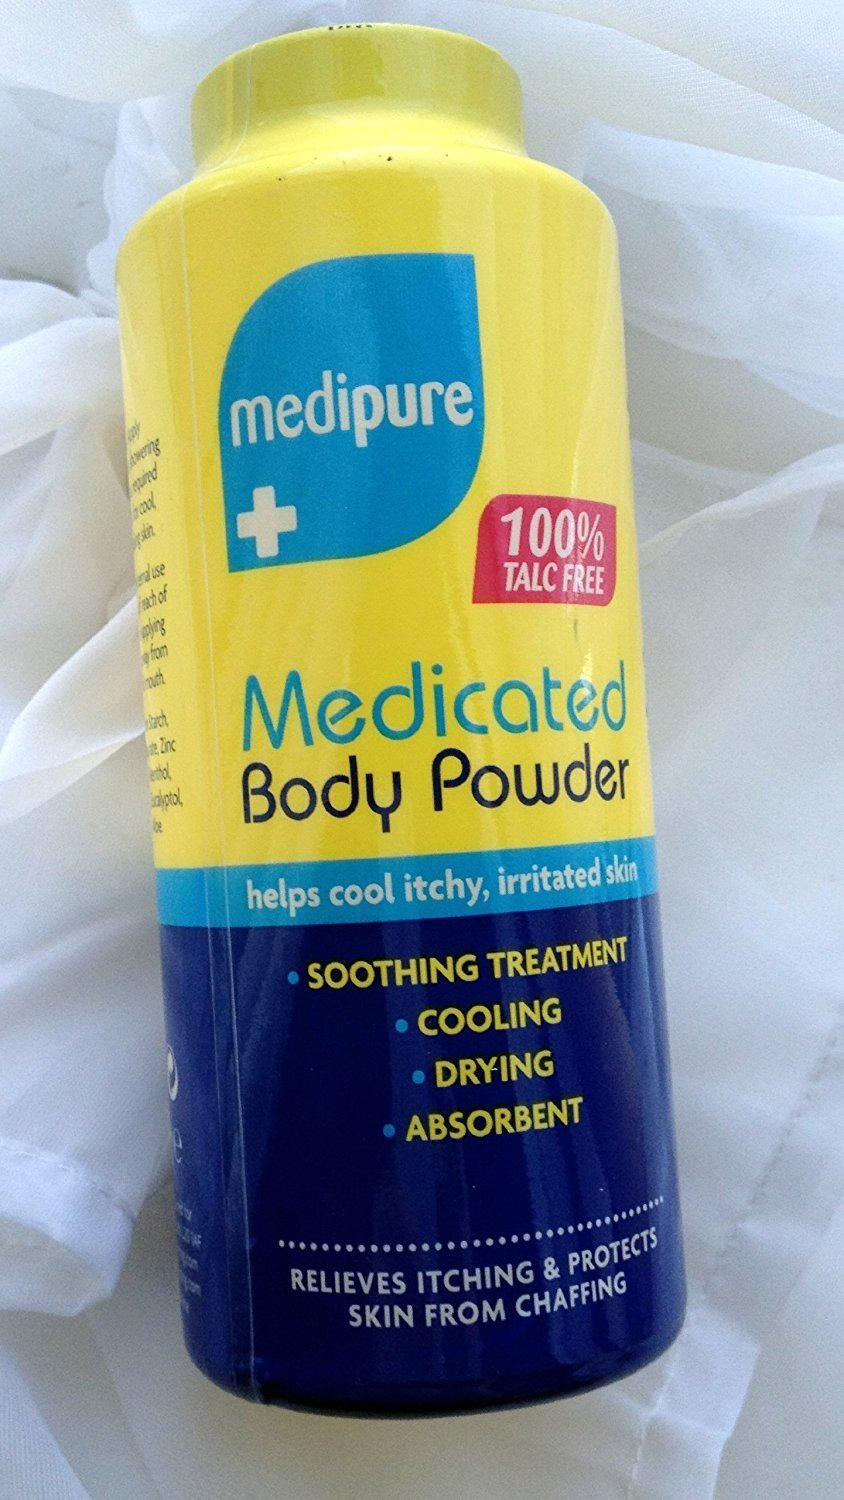 Medipure Unisex Medicated Body Powder For Itchy, Irritated Skin-200g new TP201A